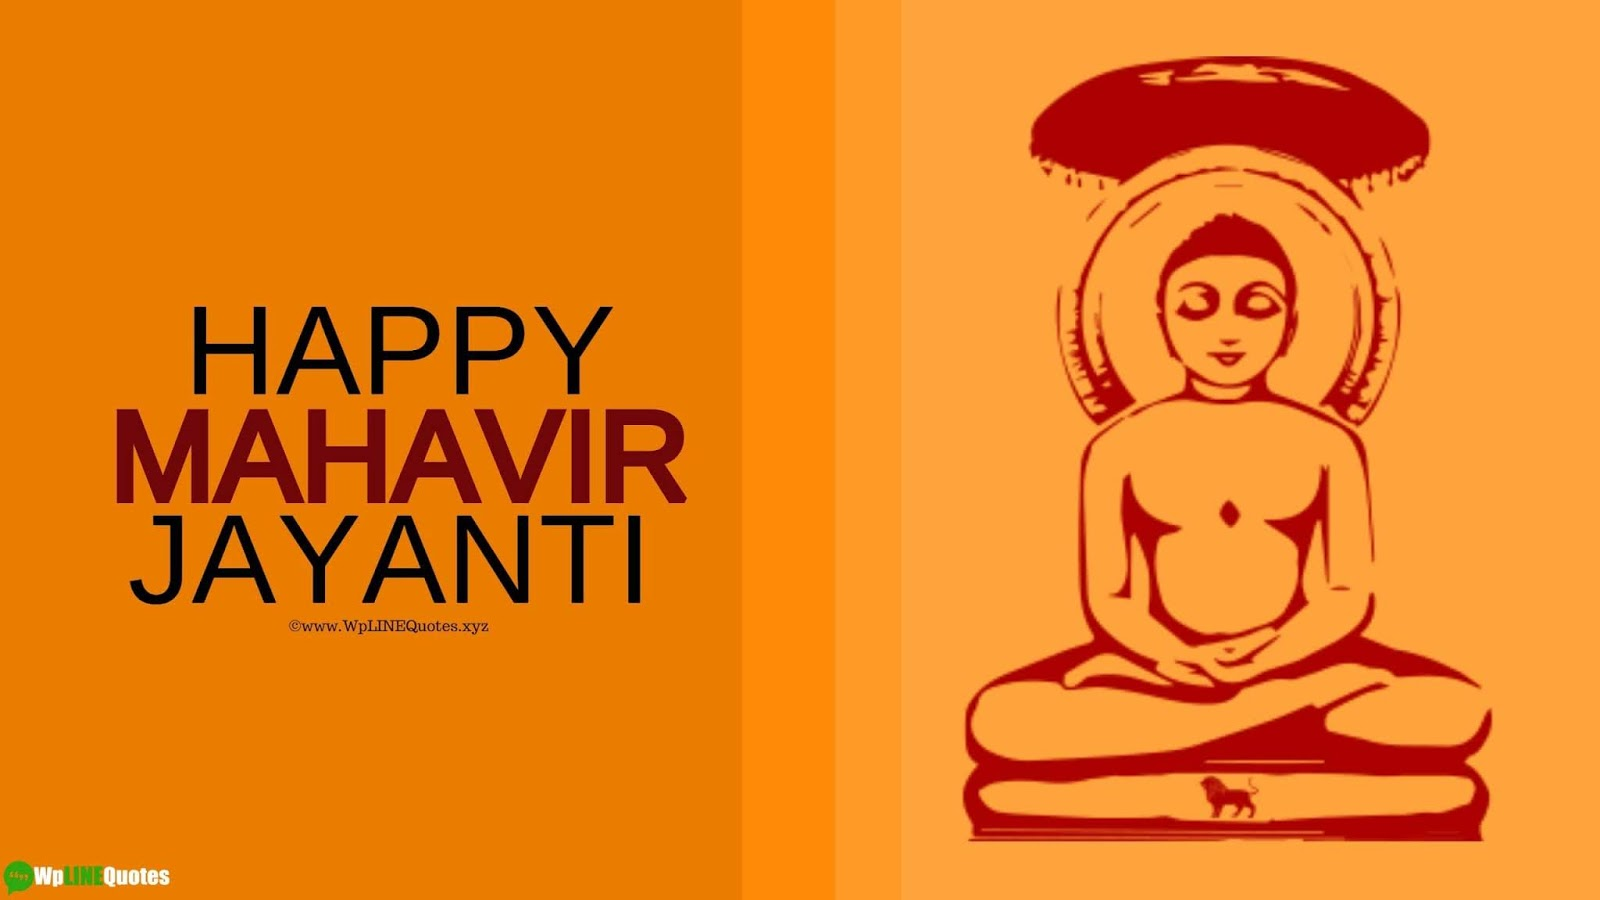 Happy Mahavir Jayanti Wishes, Quotes, Messages, Greetings, SMS, Images, Drawings For Whatsapp & Facebook